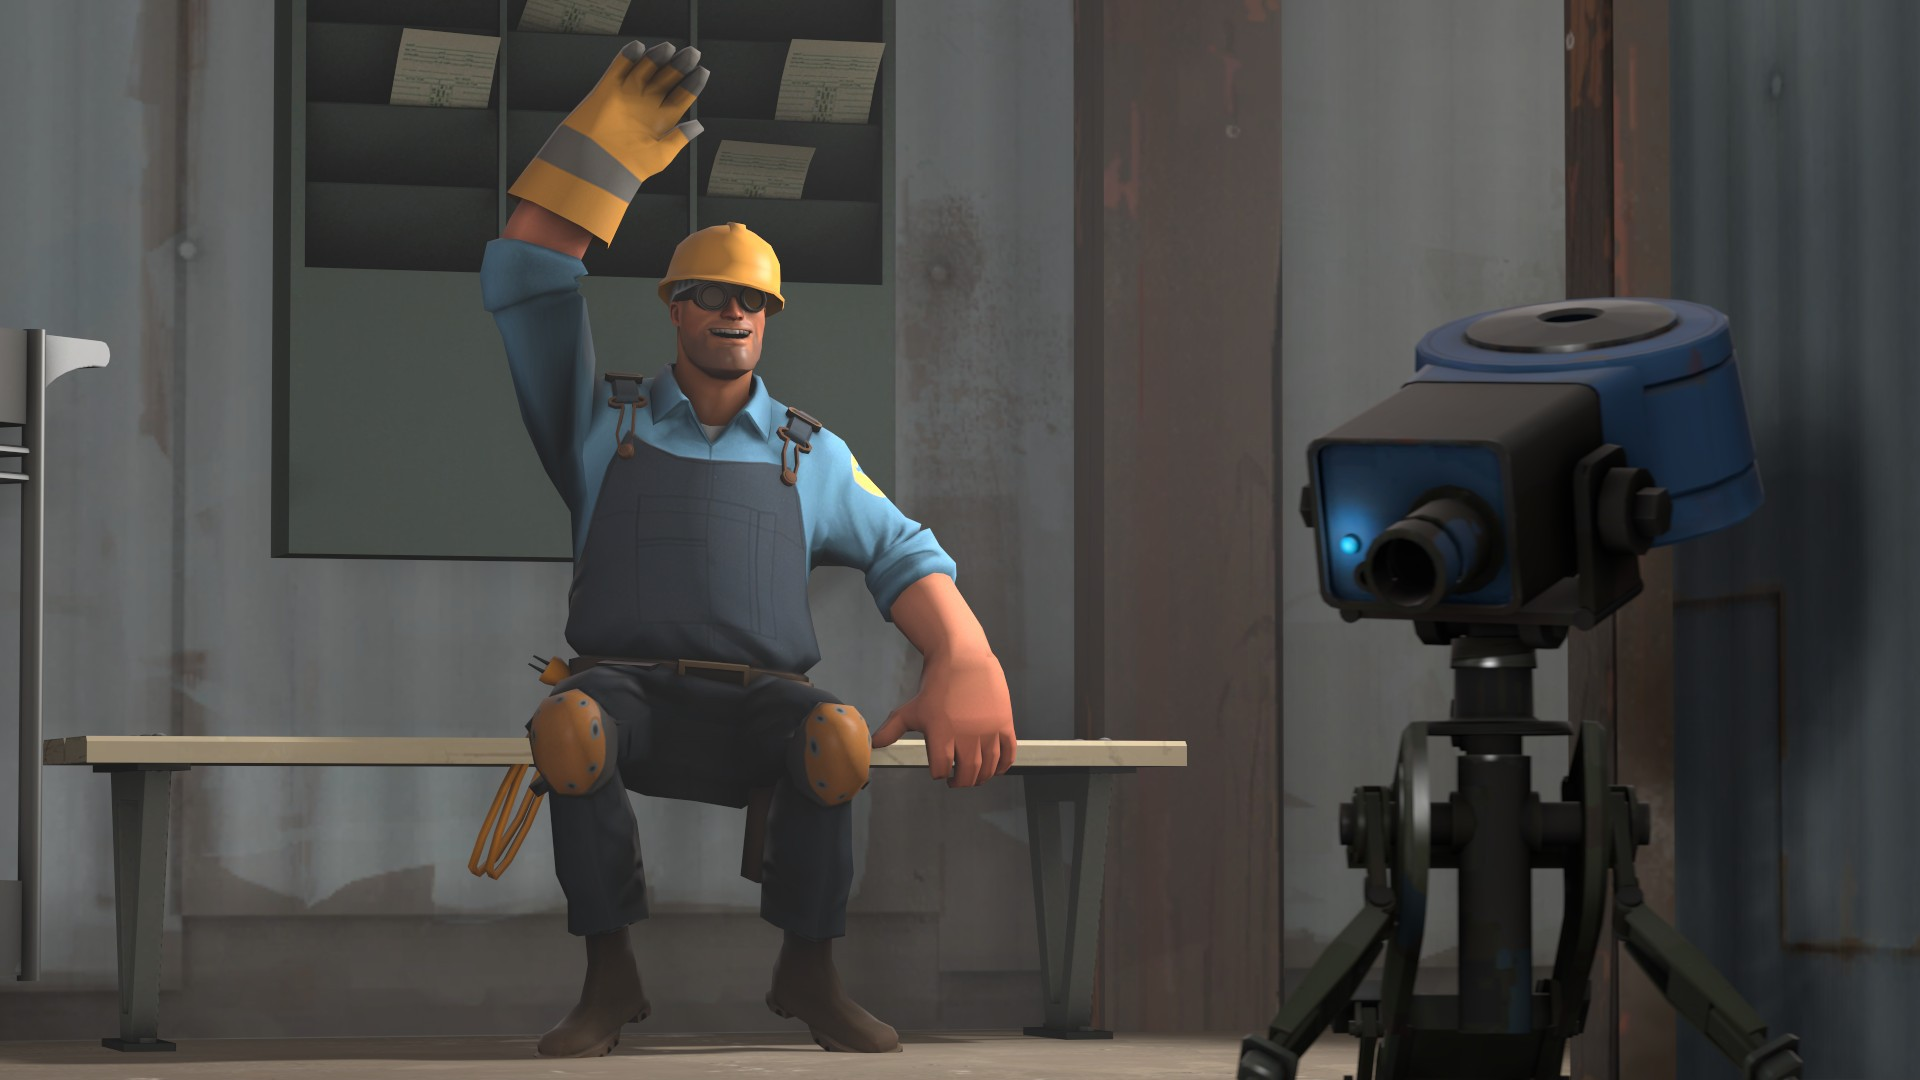 Video-games-engineer-tf-team-fortress-1920x1080-games-engineer-tf-team-fortress-via-www-wallpaper-wp360328